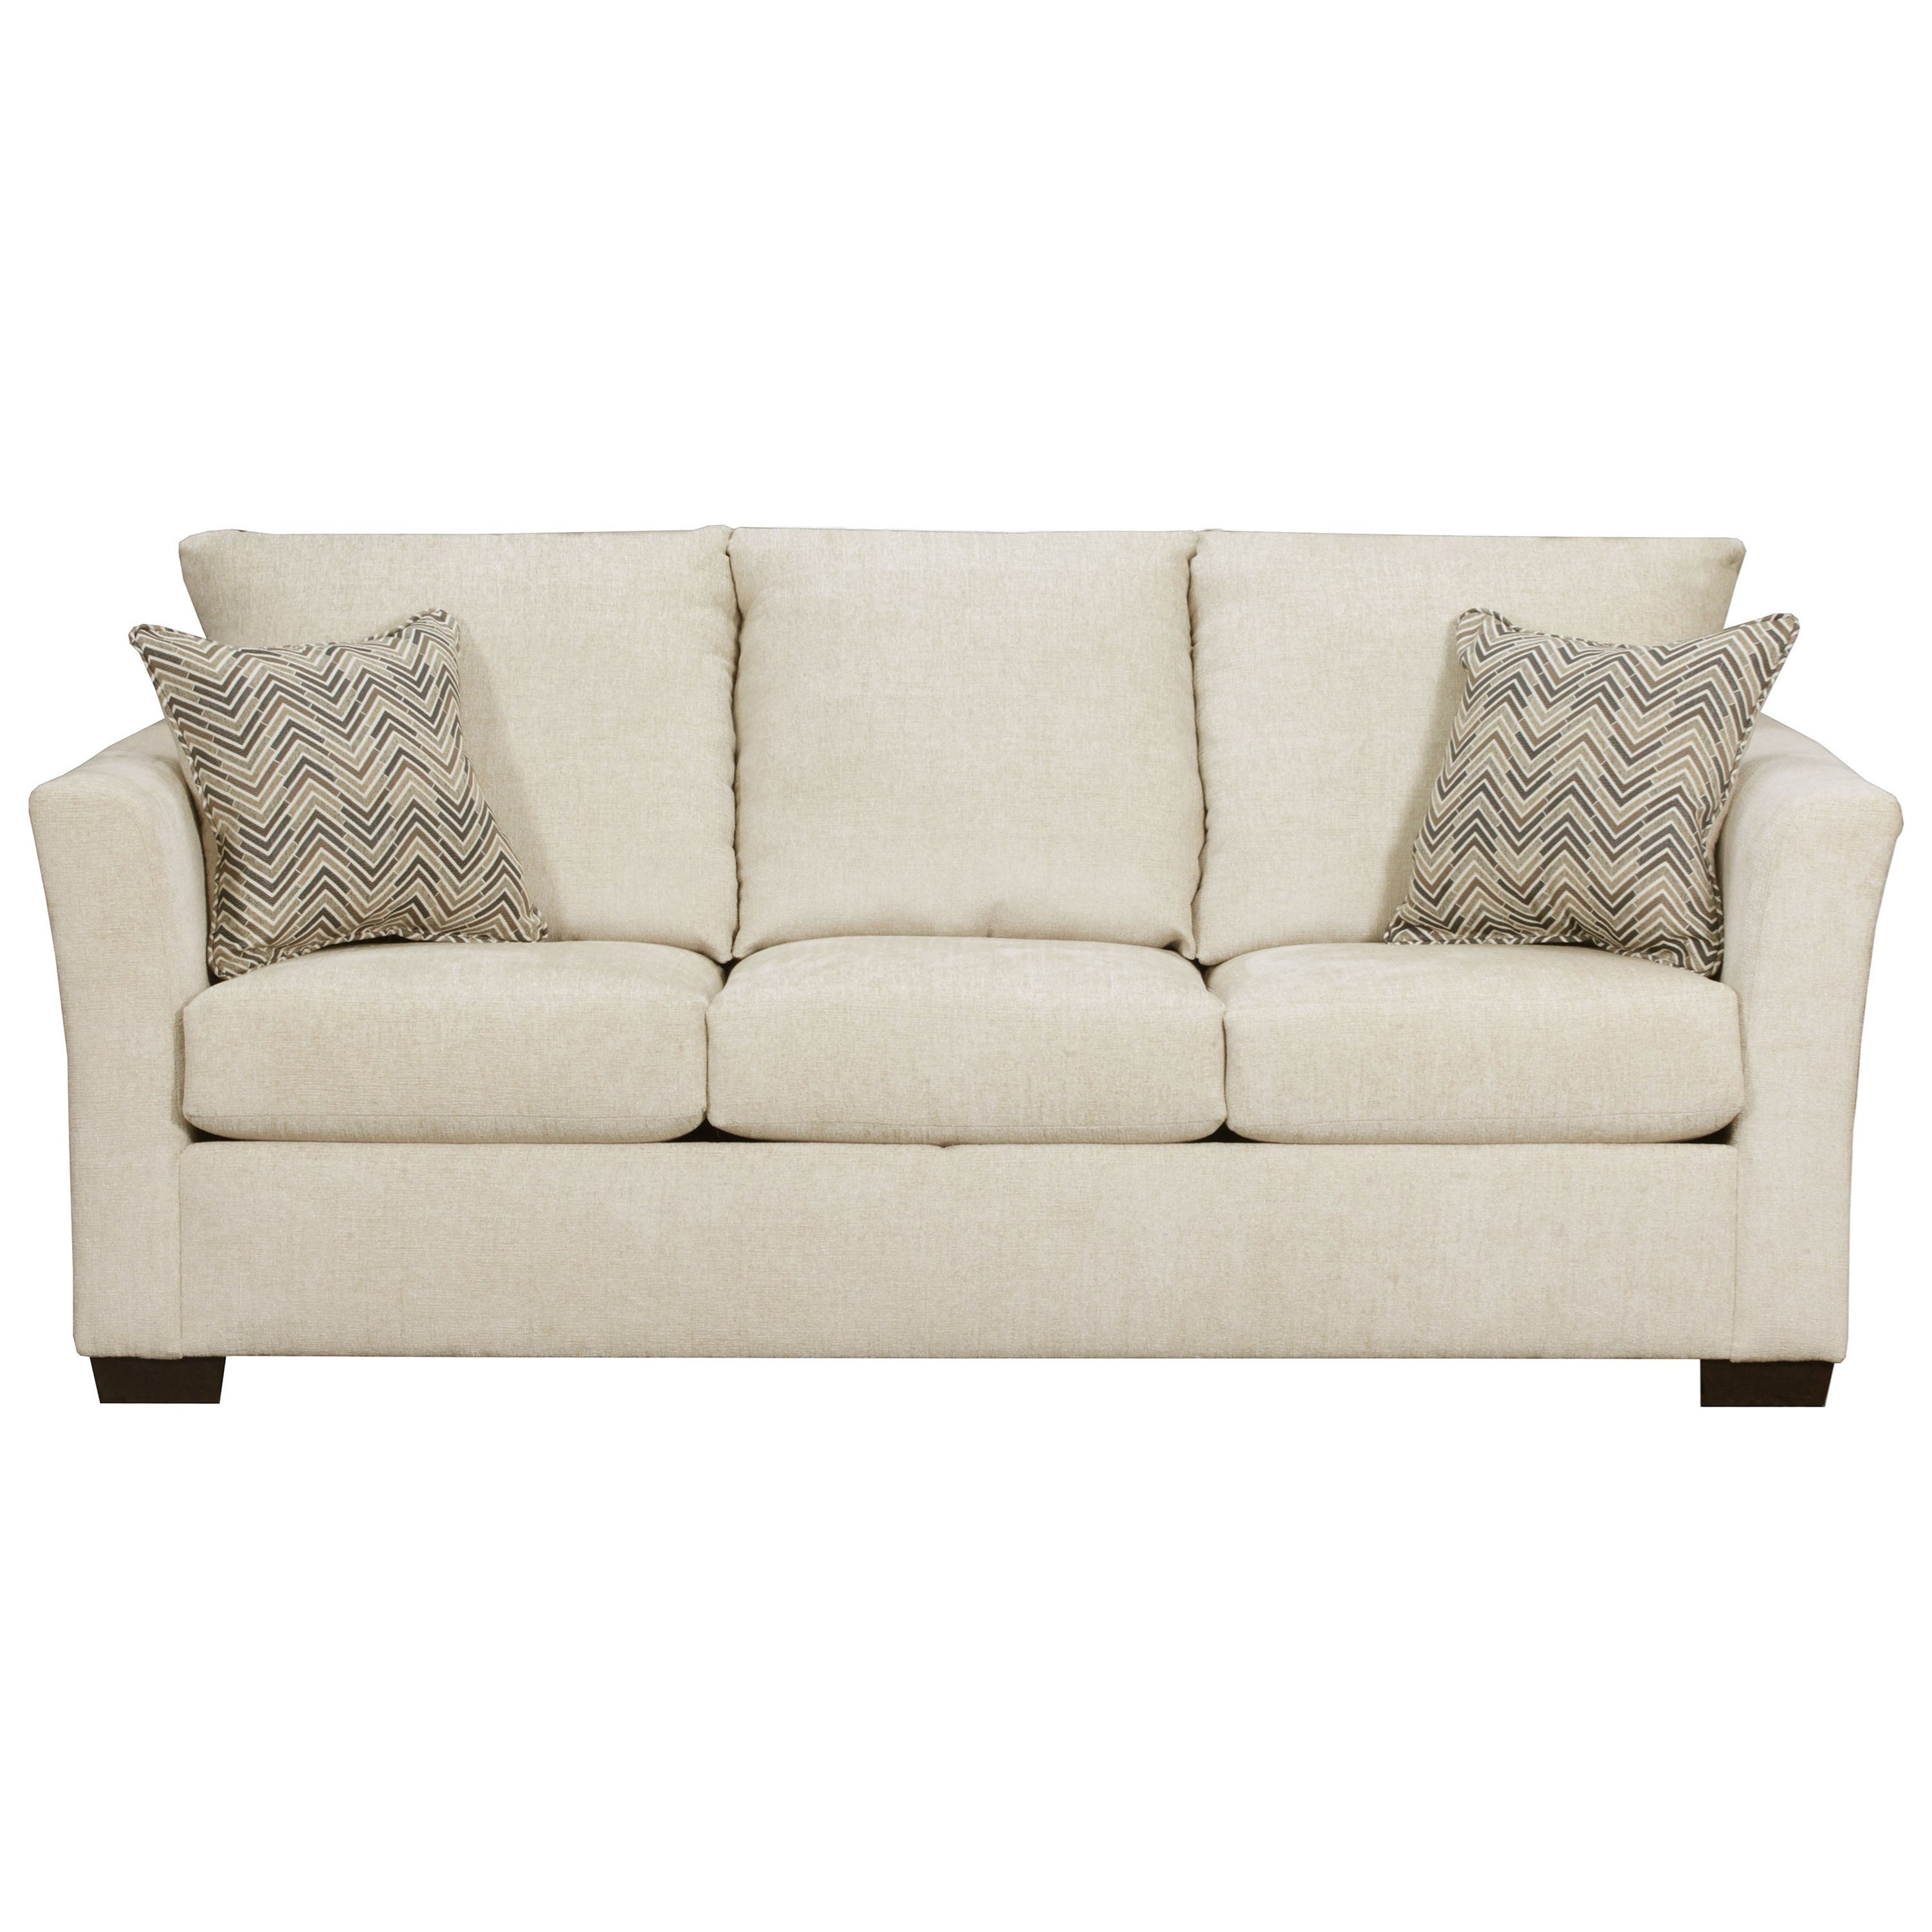 4206 Transitional Queen Sleeper Sofa by United Furniture Industries at Dream Home Interiors